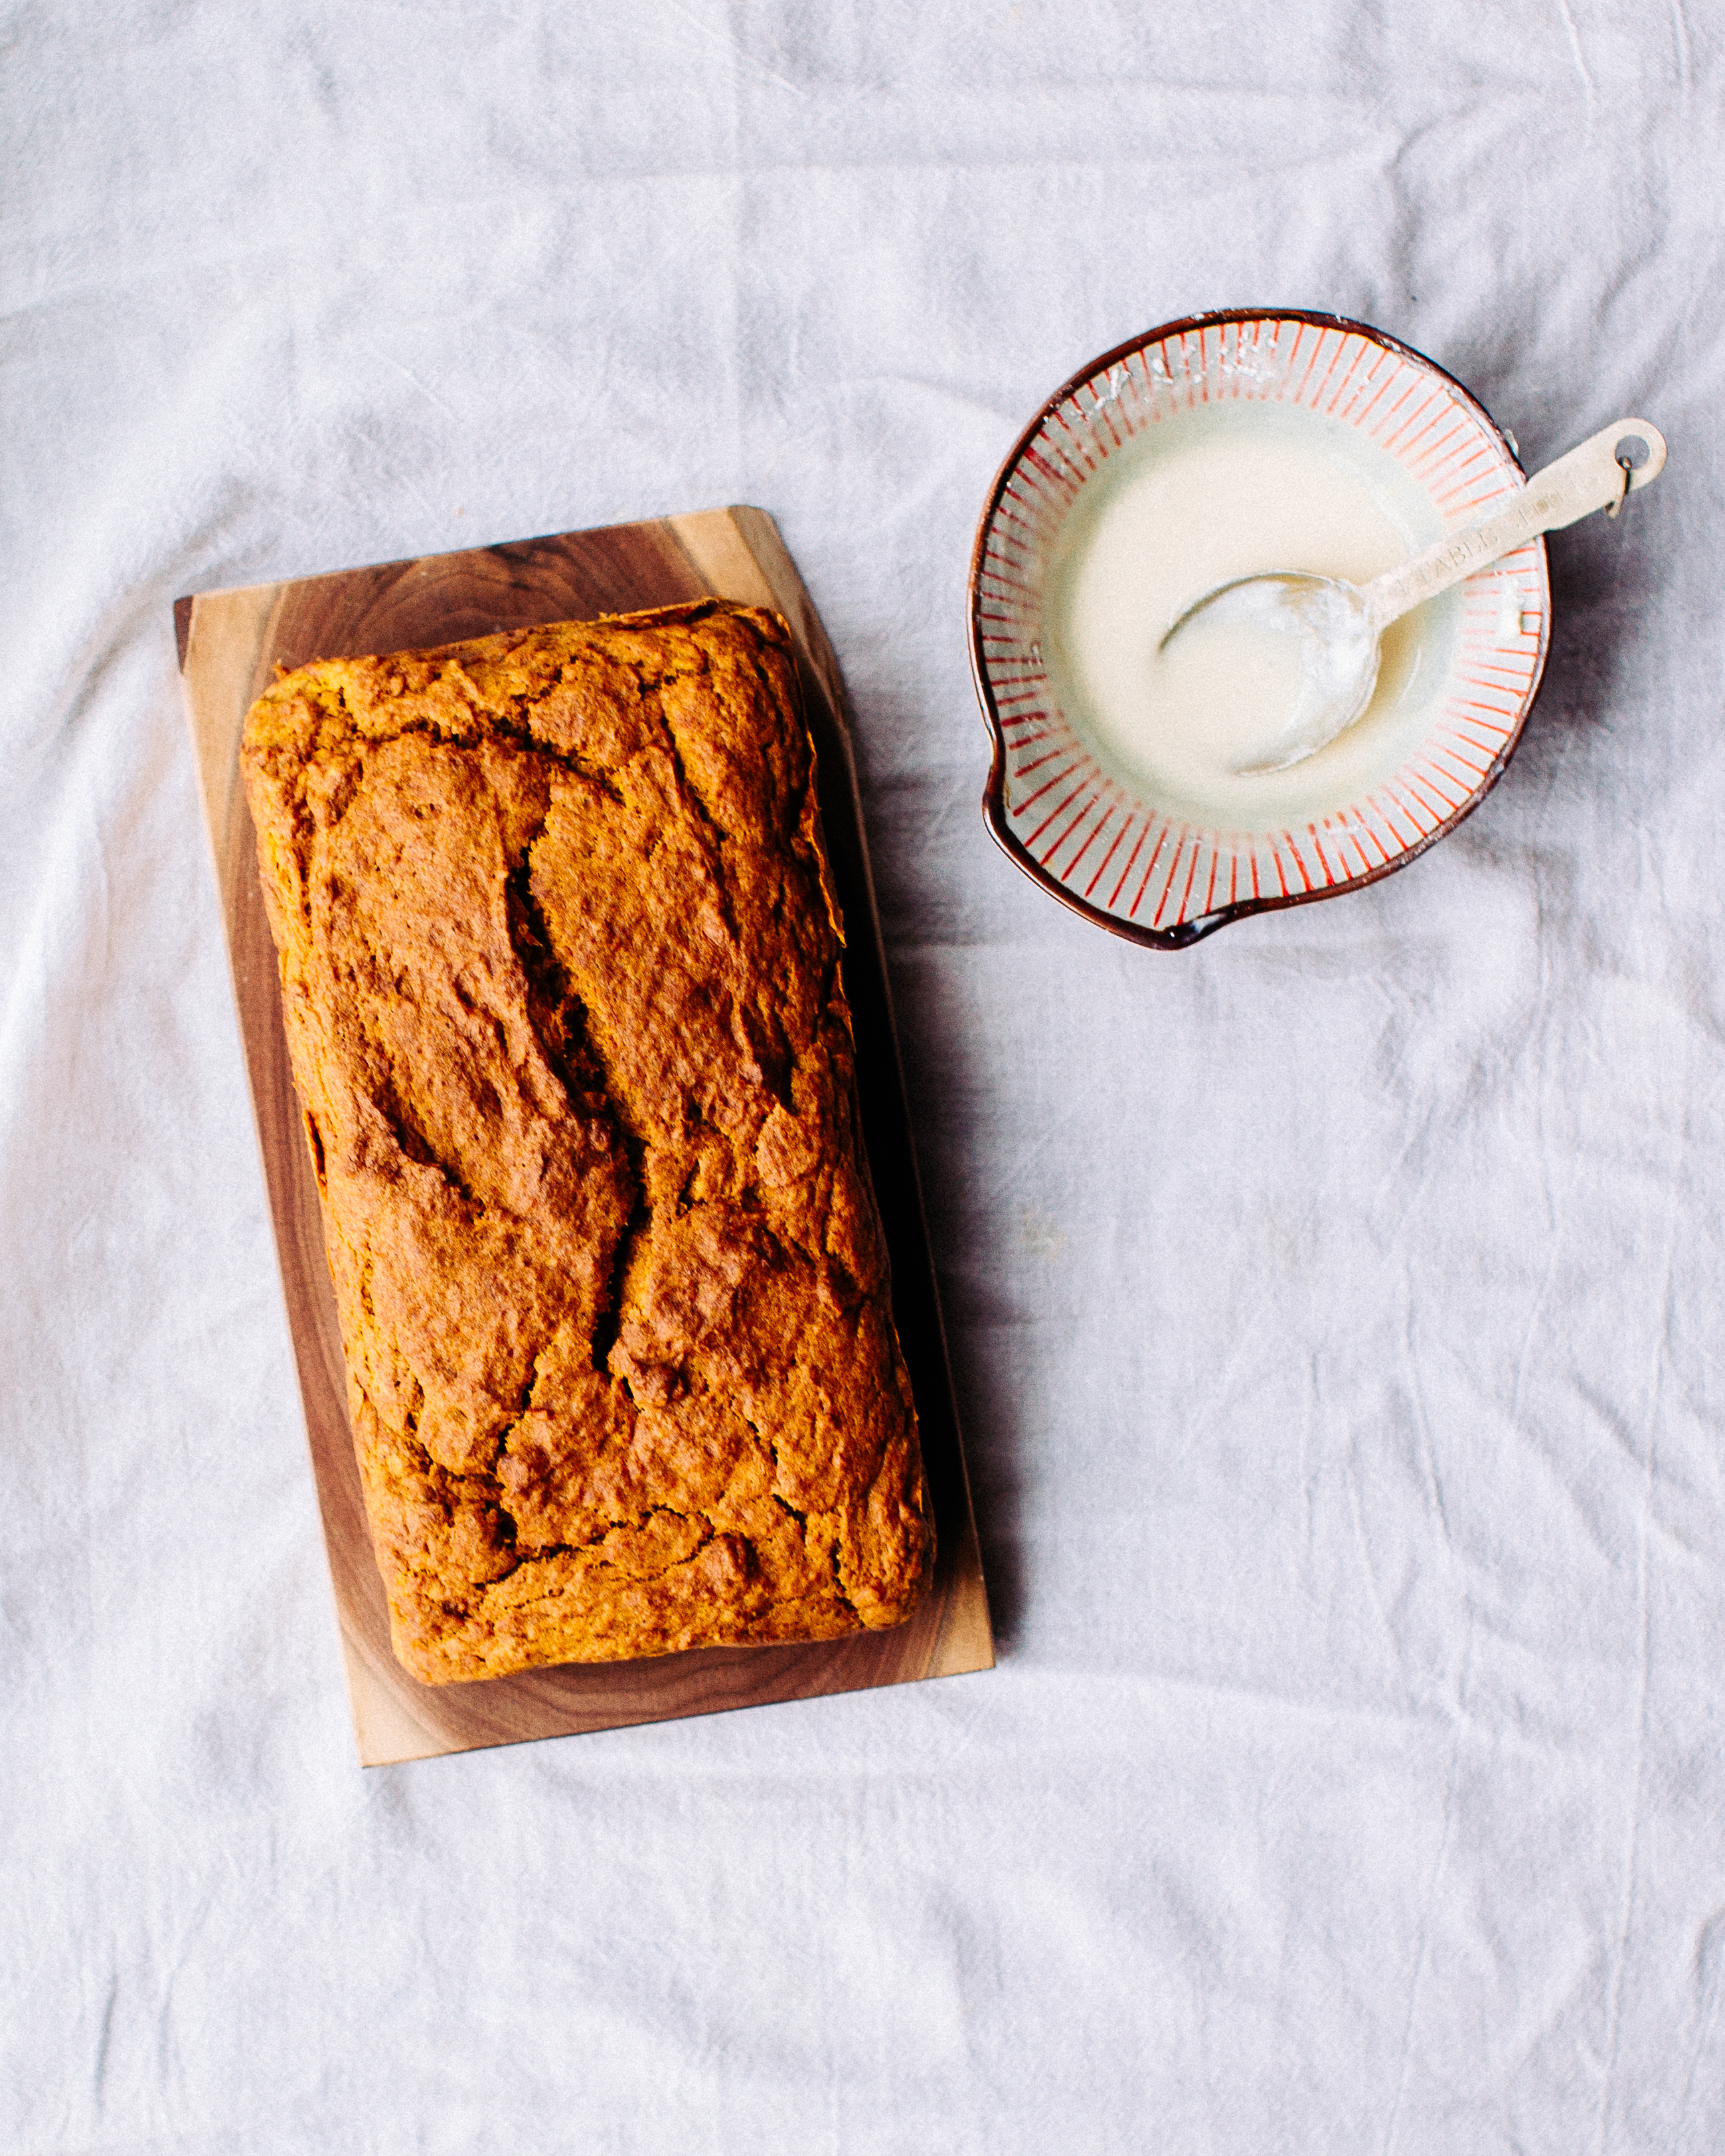 the pumpkin spice bread without the frosting on it yet